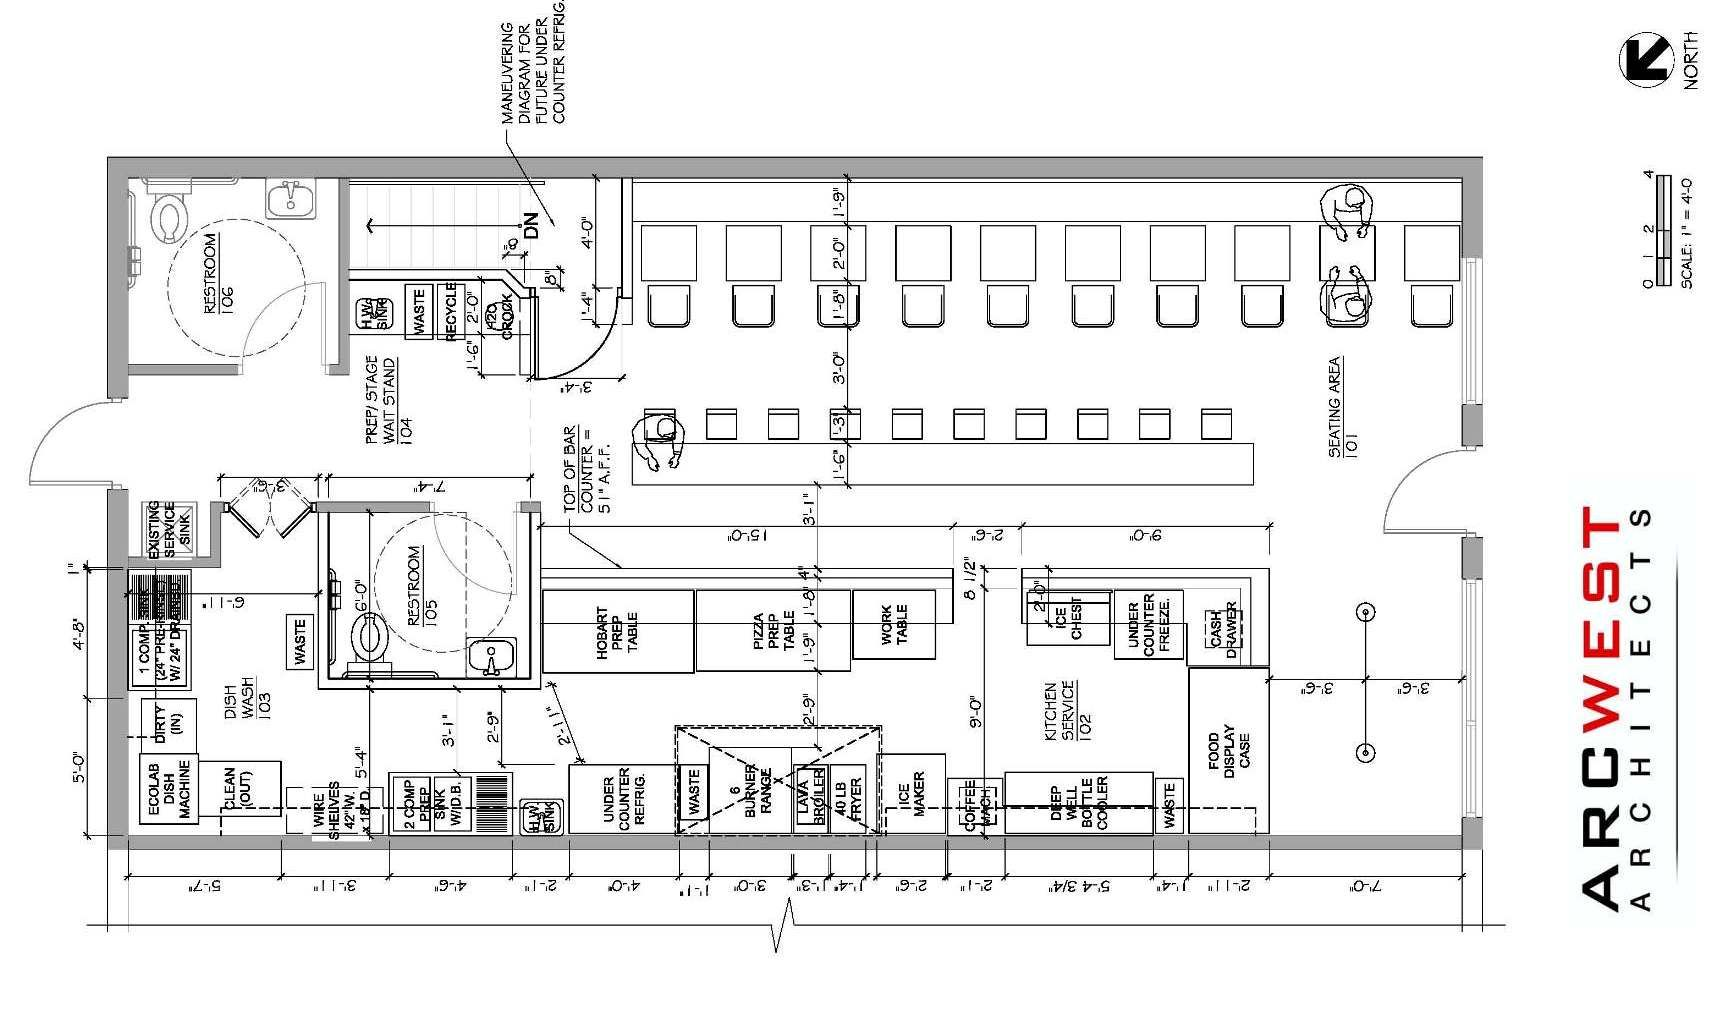 Restaurant Kitchen Layout Autocad awesome-italian-restaurant-floor-plan-with-restaurant-kitchen